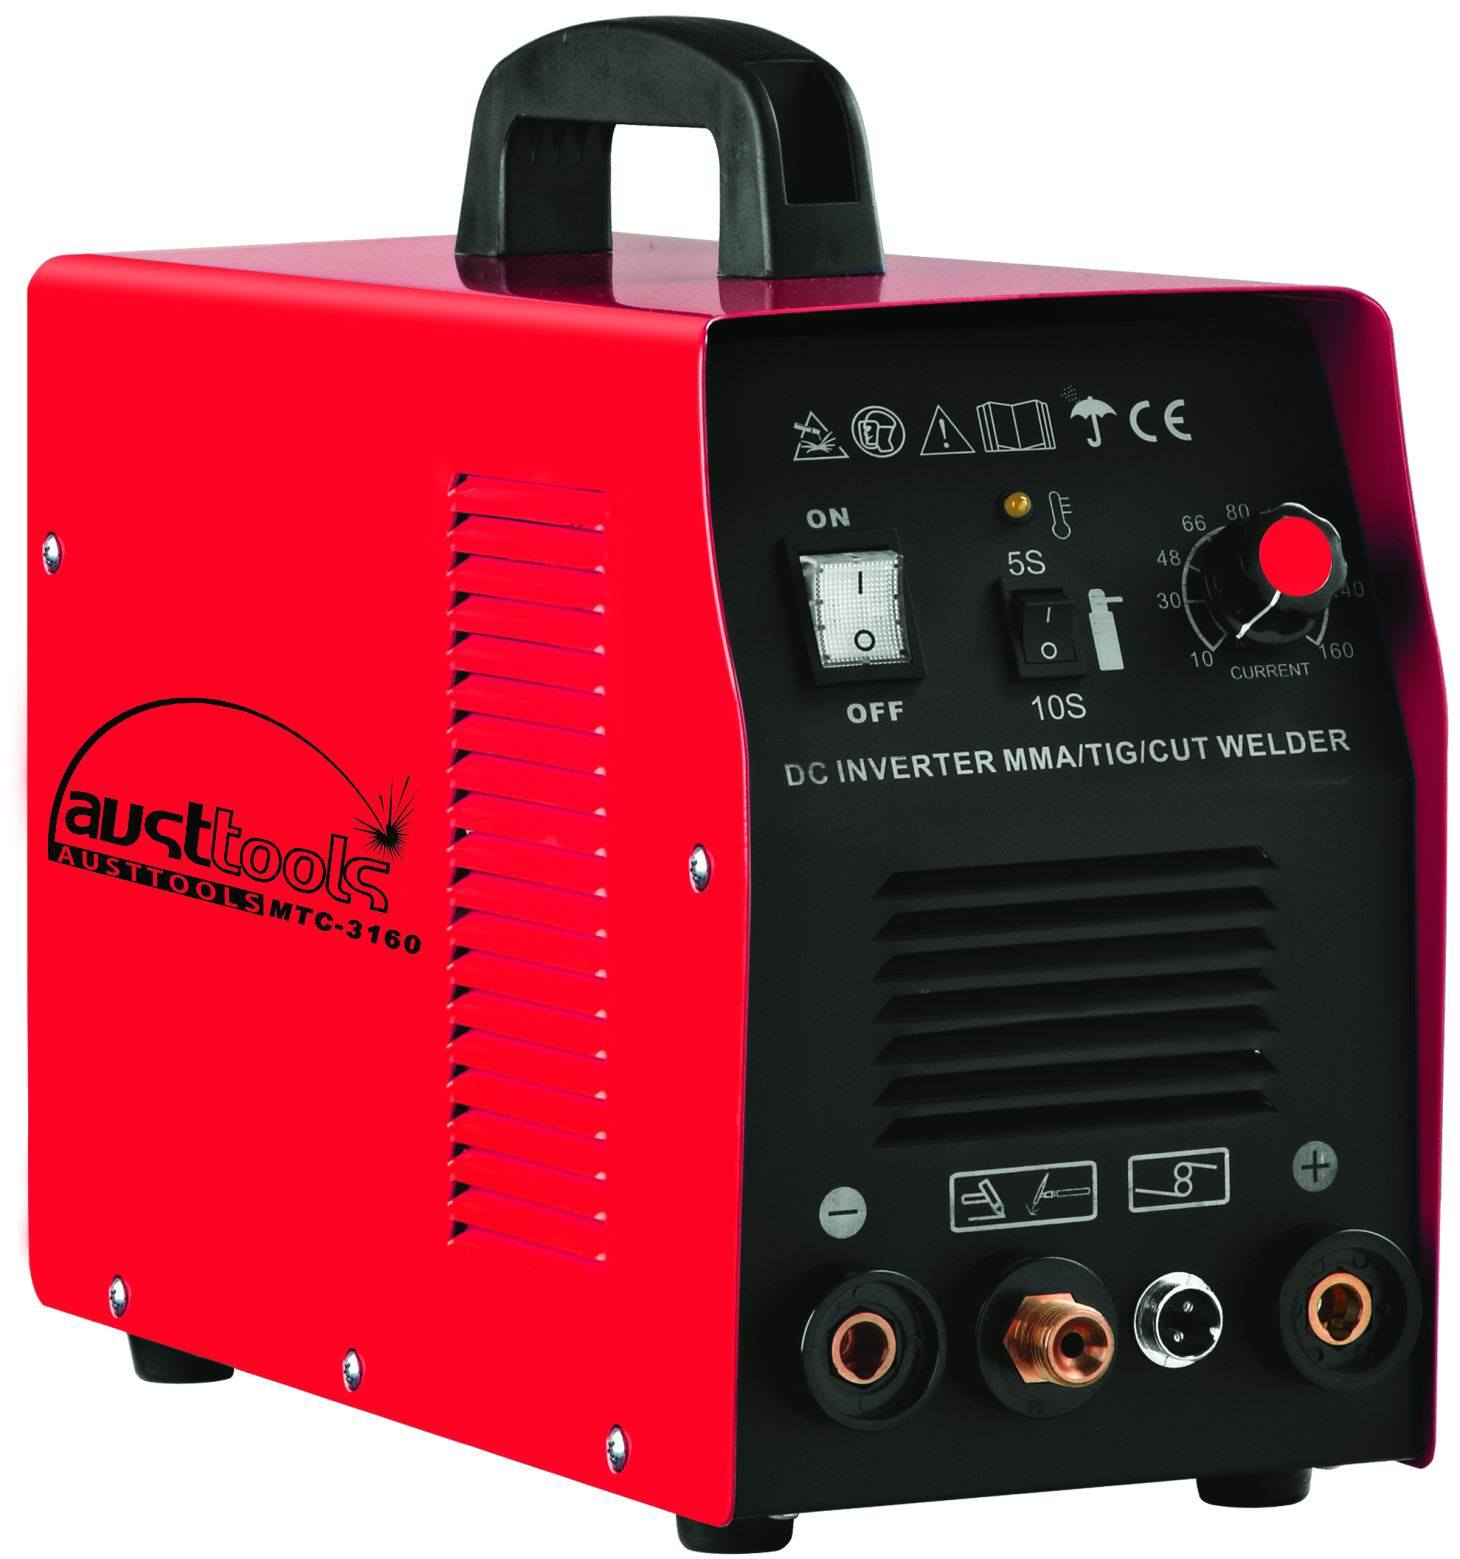 DC Inverter Mosfet MMA/ TIG/ Cut Equipment (MTC -3180)